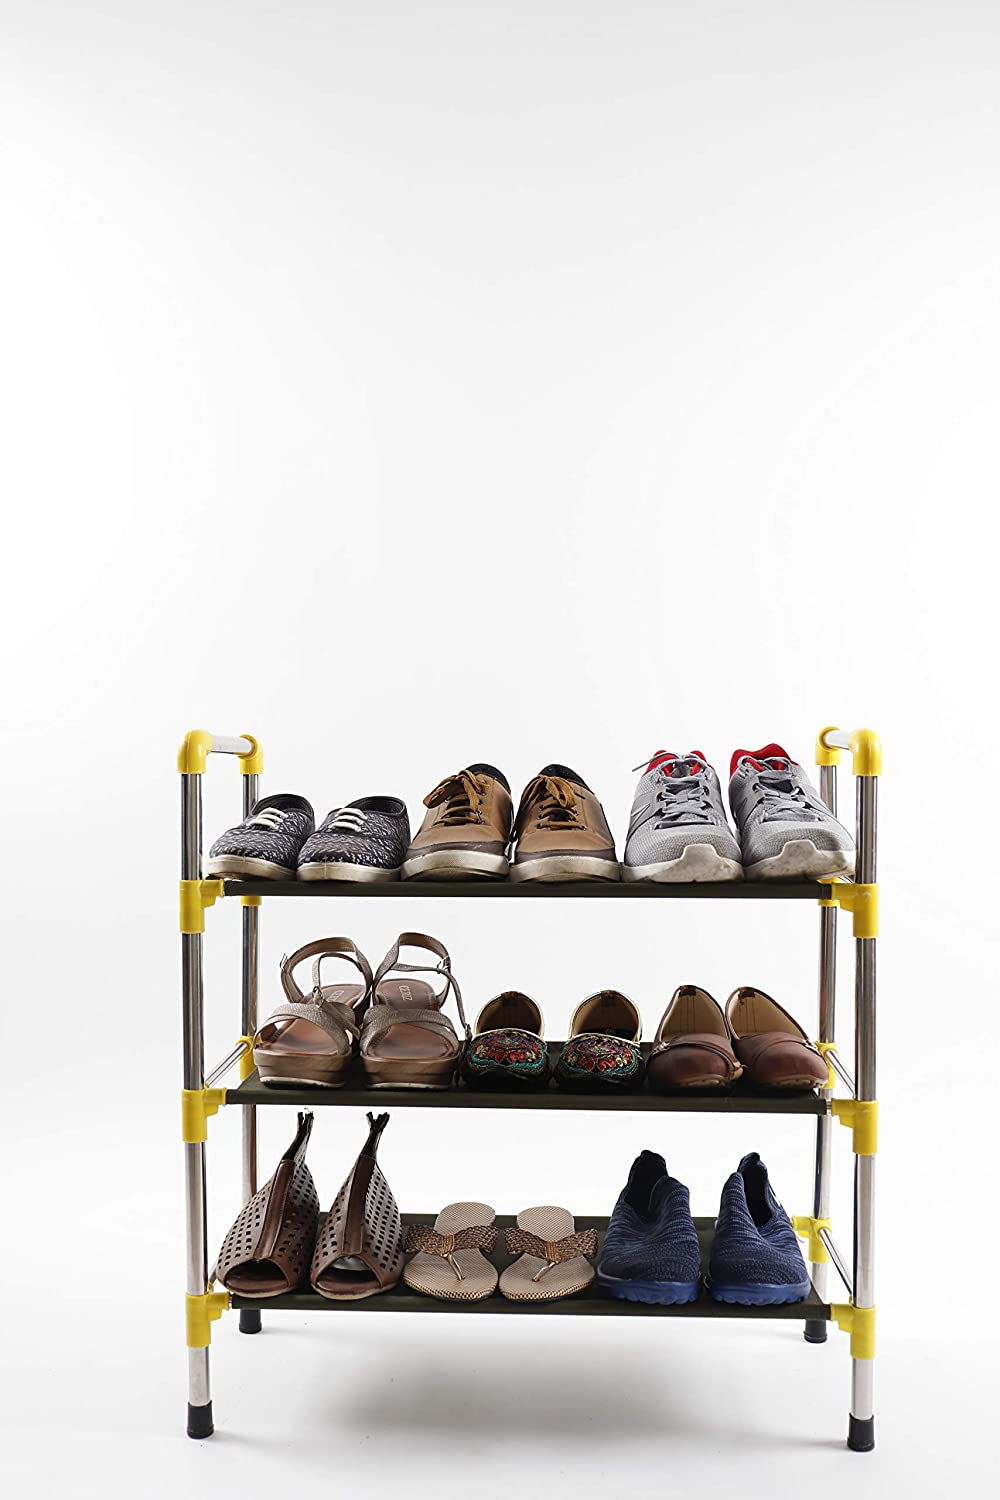 SU KASSA Multi Storage Rack Suitable to Store or Stack or Arrange Shoes, Cloths,Books Kitchen Items, Made of Stainless Steel  plastic joints and Fabric shelves